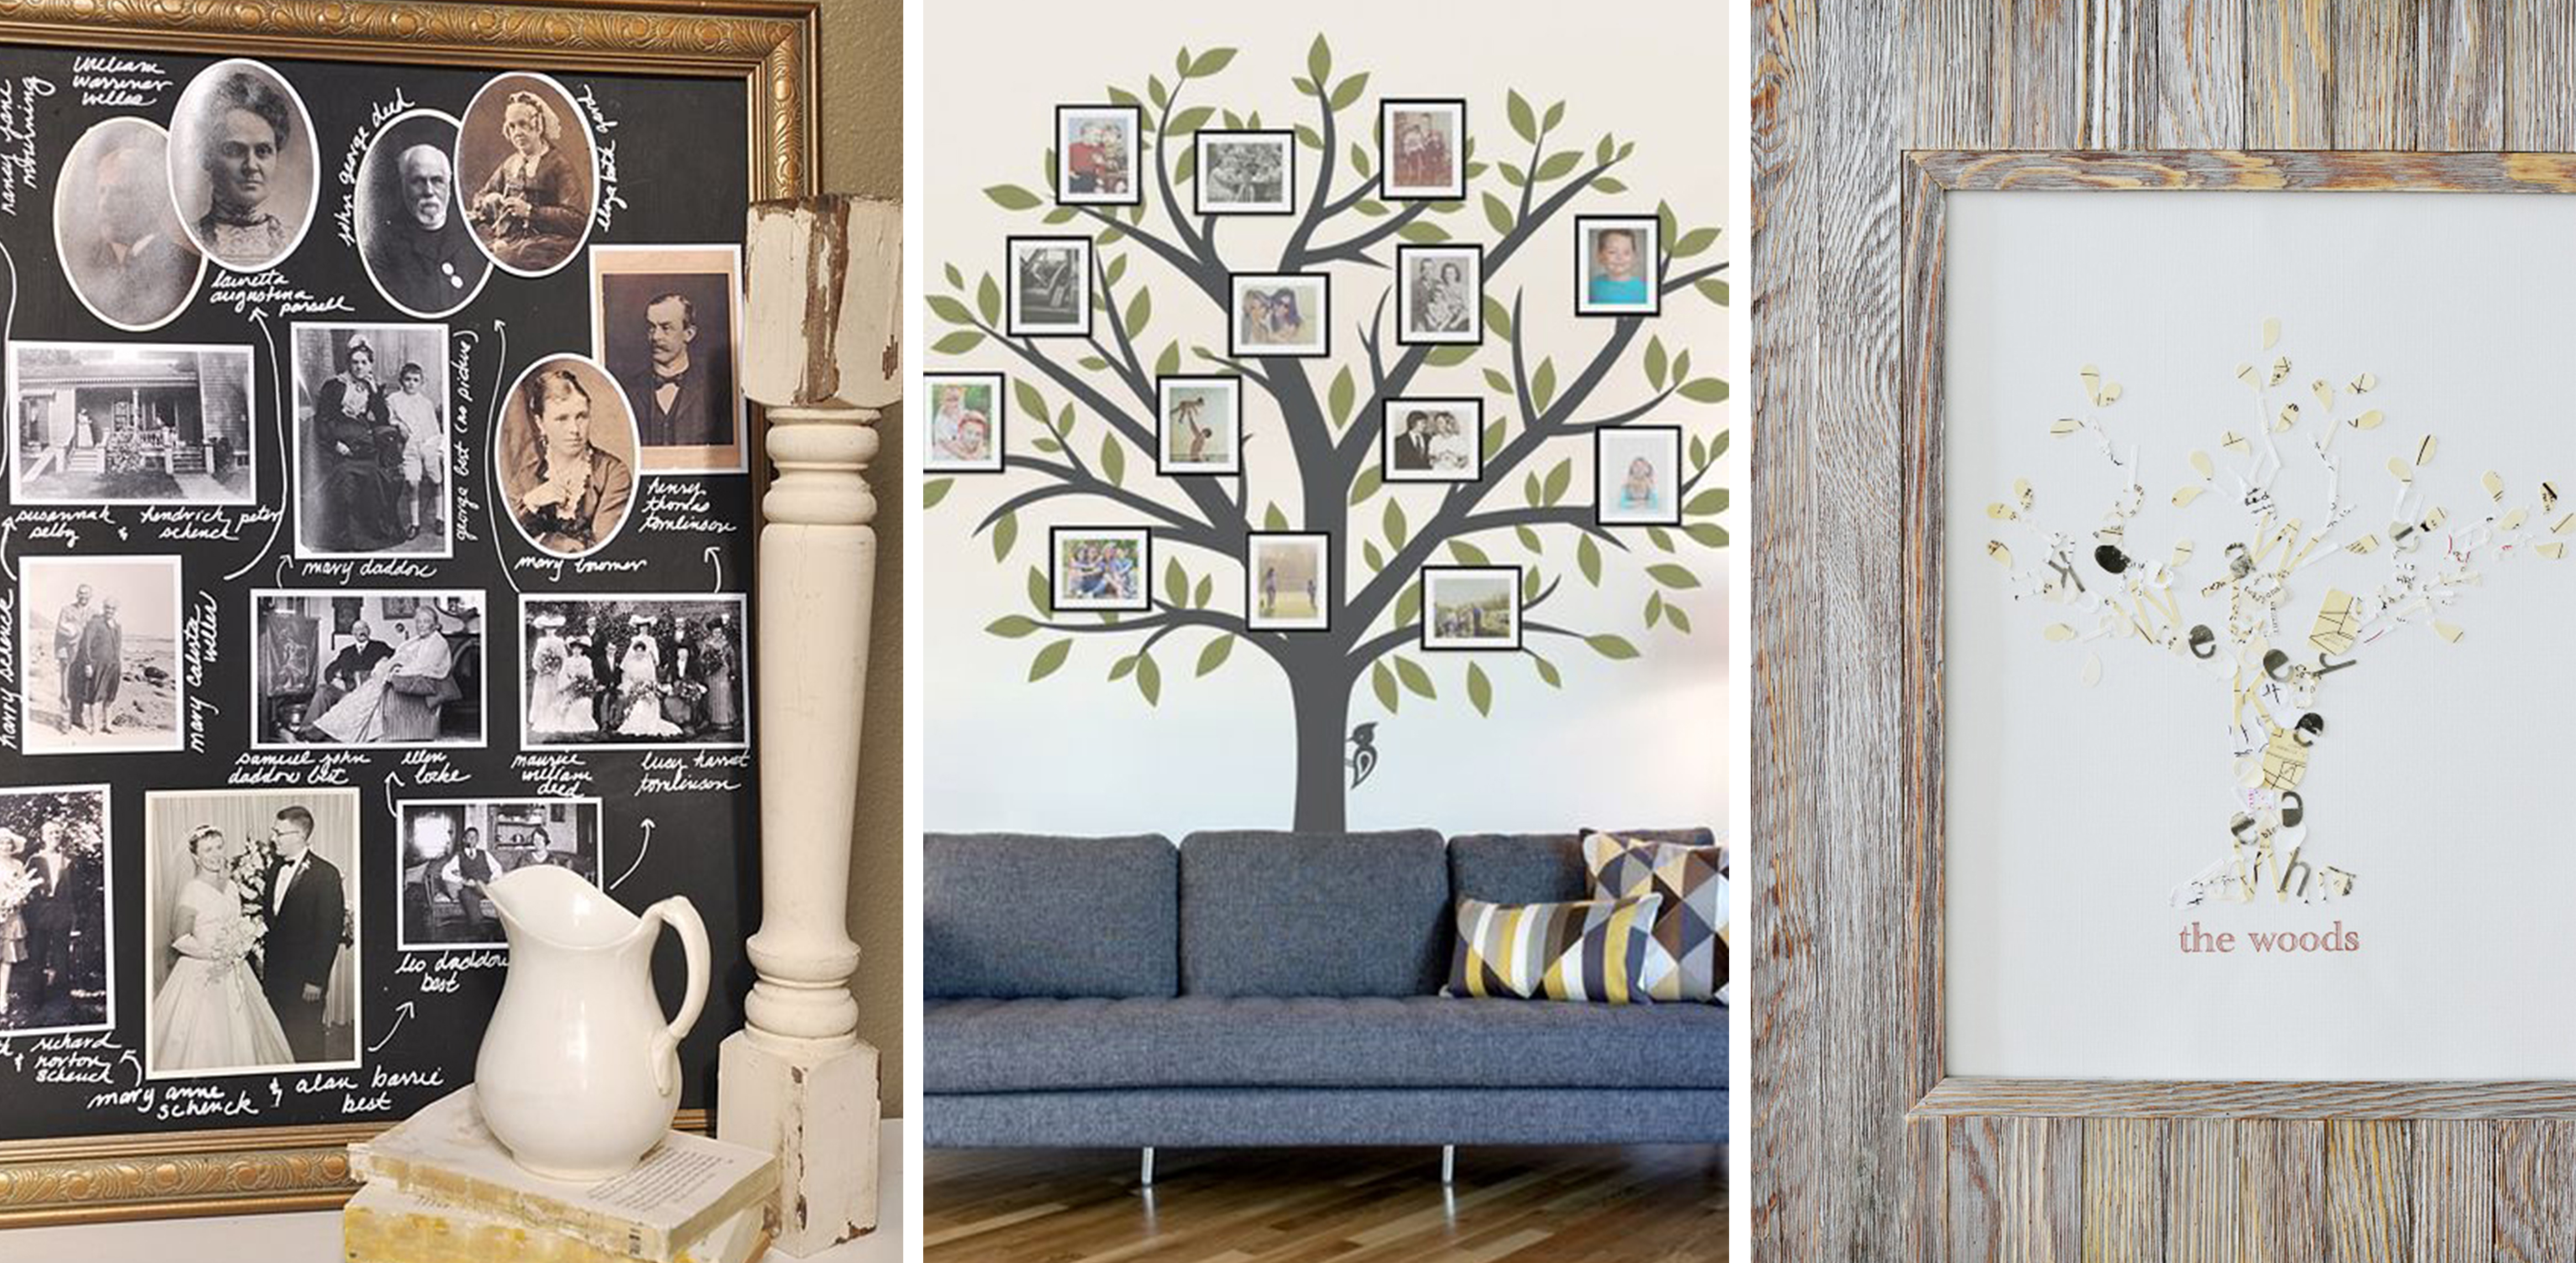 Creative Ways To Display Quotes: 12 Family Tree Ideas You Can DIY